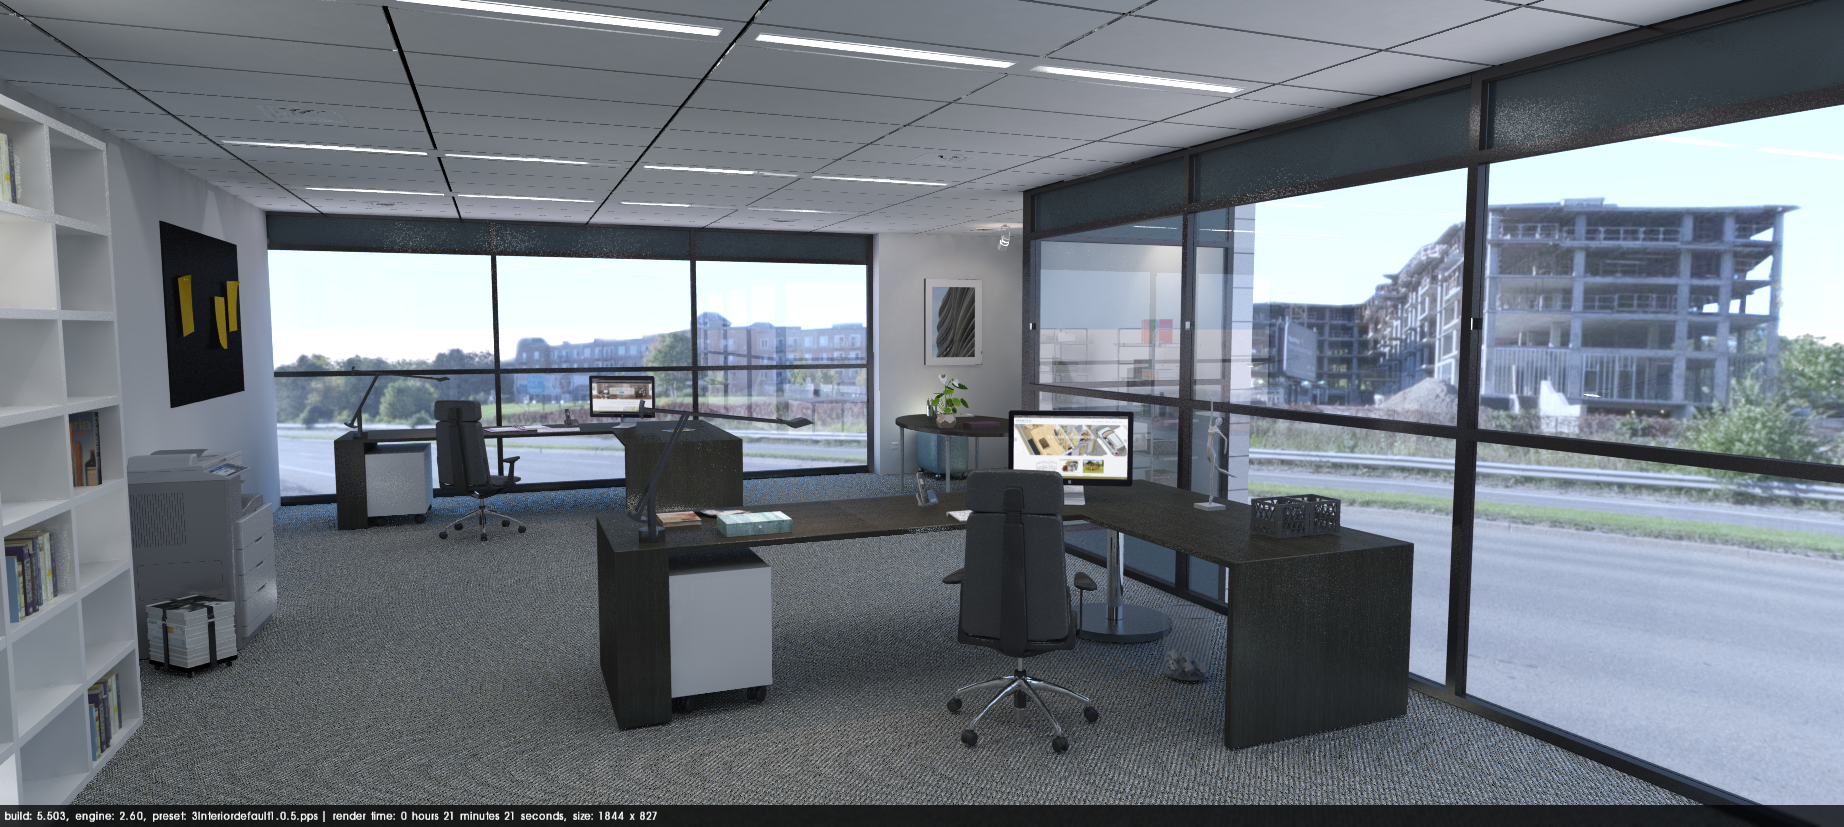 Interieur-office-v6-no-exterior-orglights 2018-10-29 23502600000.png